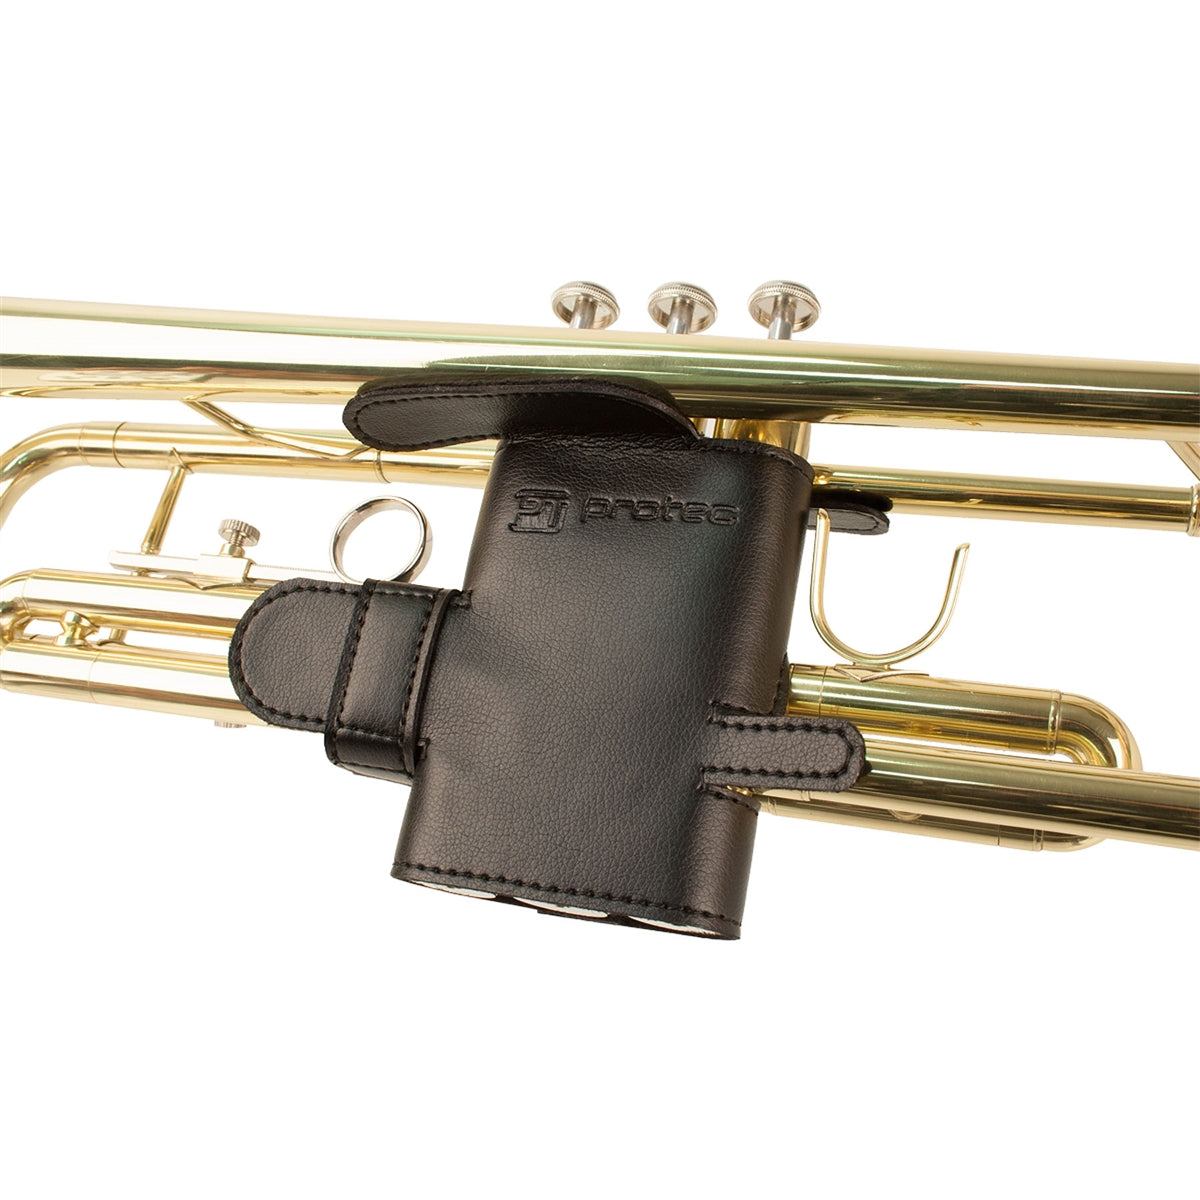 PROTEC Trumpet 6-Point Vegan Leather Valve Guard